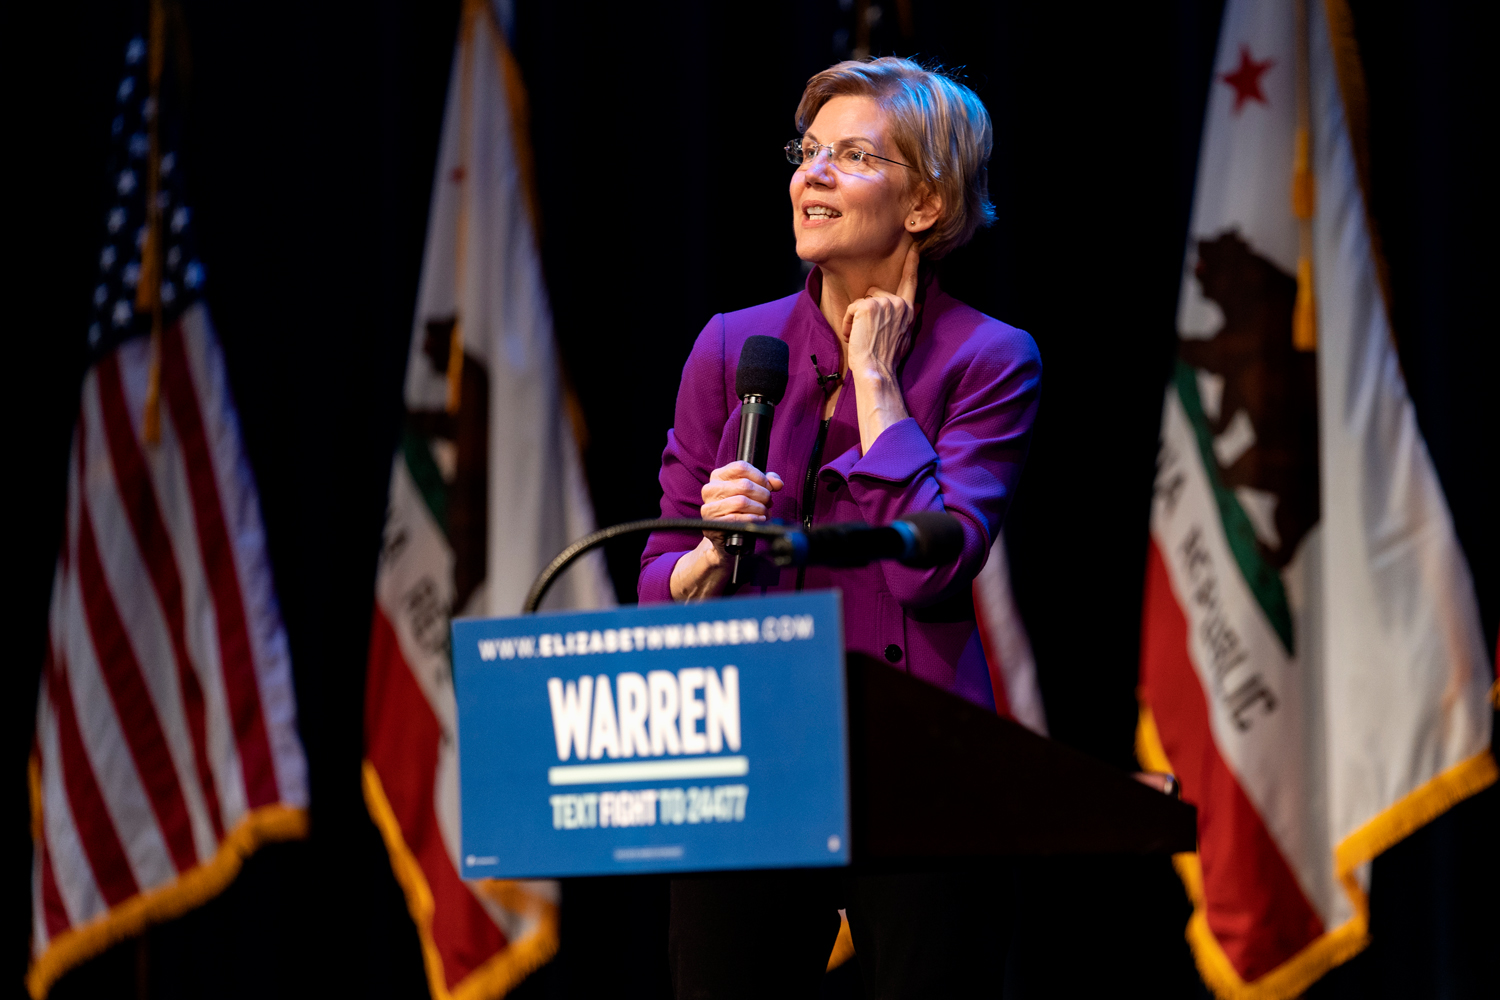 Presidential candidate Sen. Elizabeth Warren, D-Mass., speaks at a campaign rally in Glendale, California, on Feb. 18. Warren is running for the 2020 Democratic nomination for president.